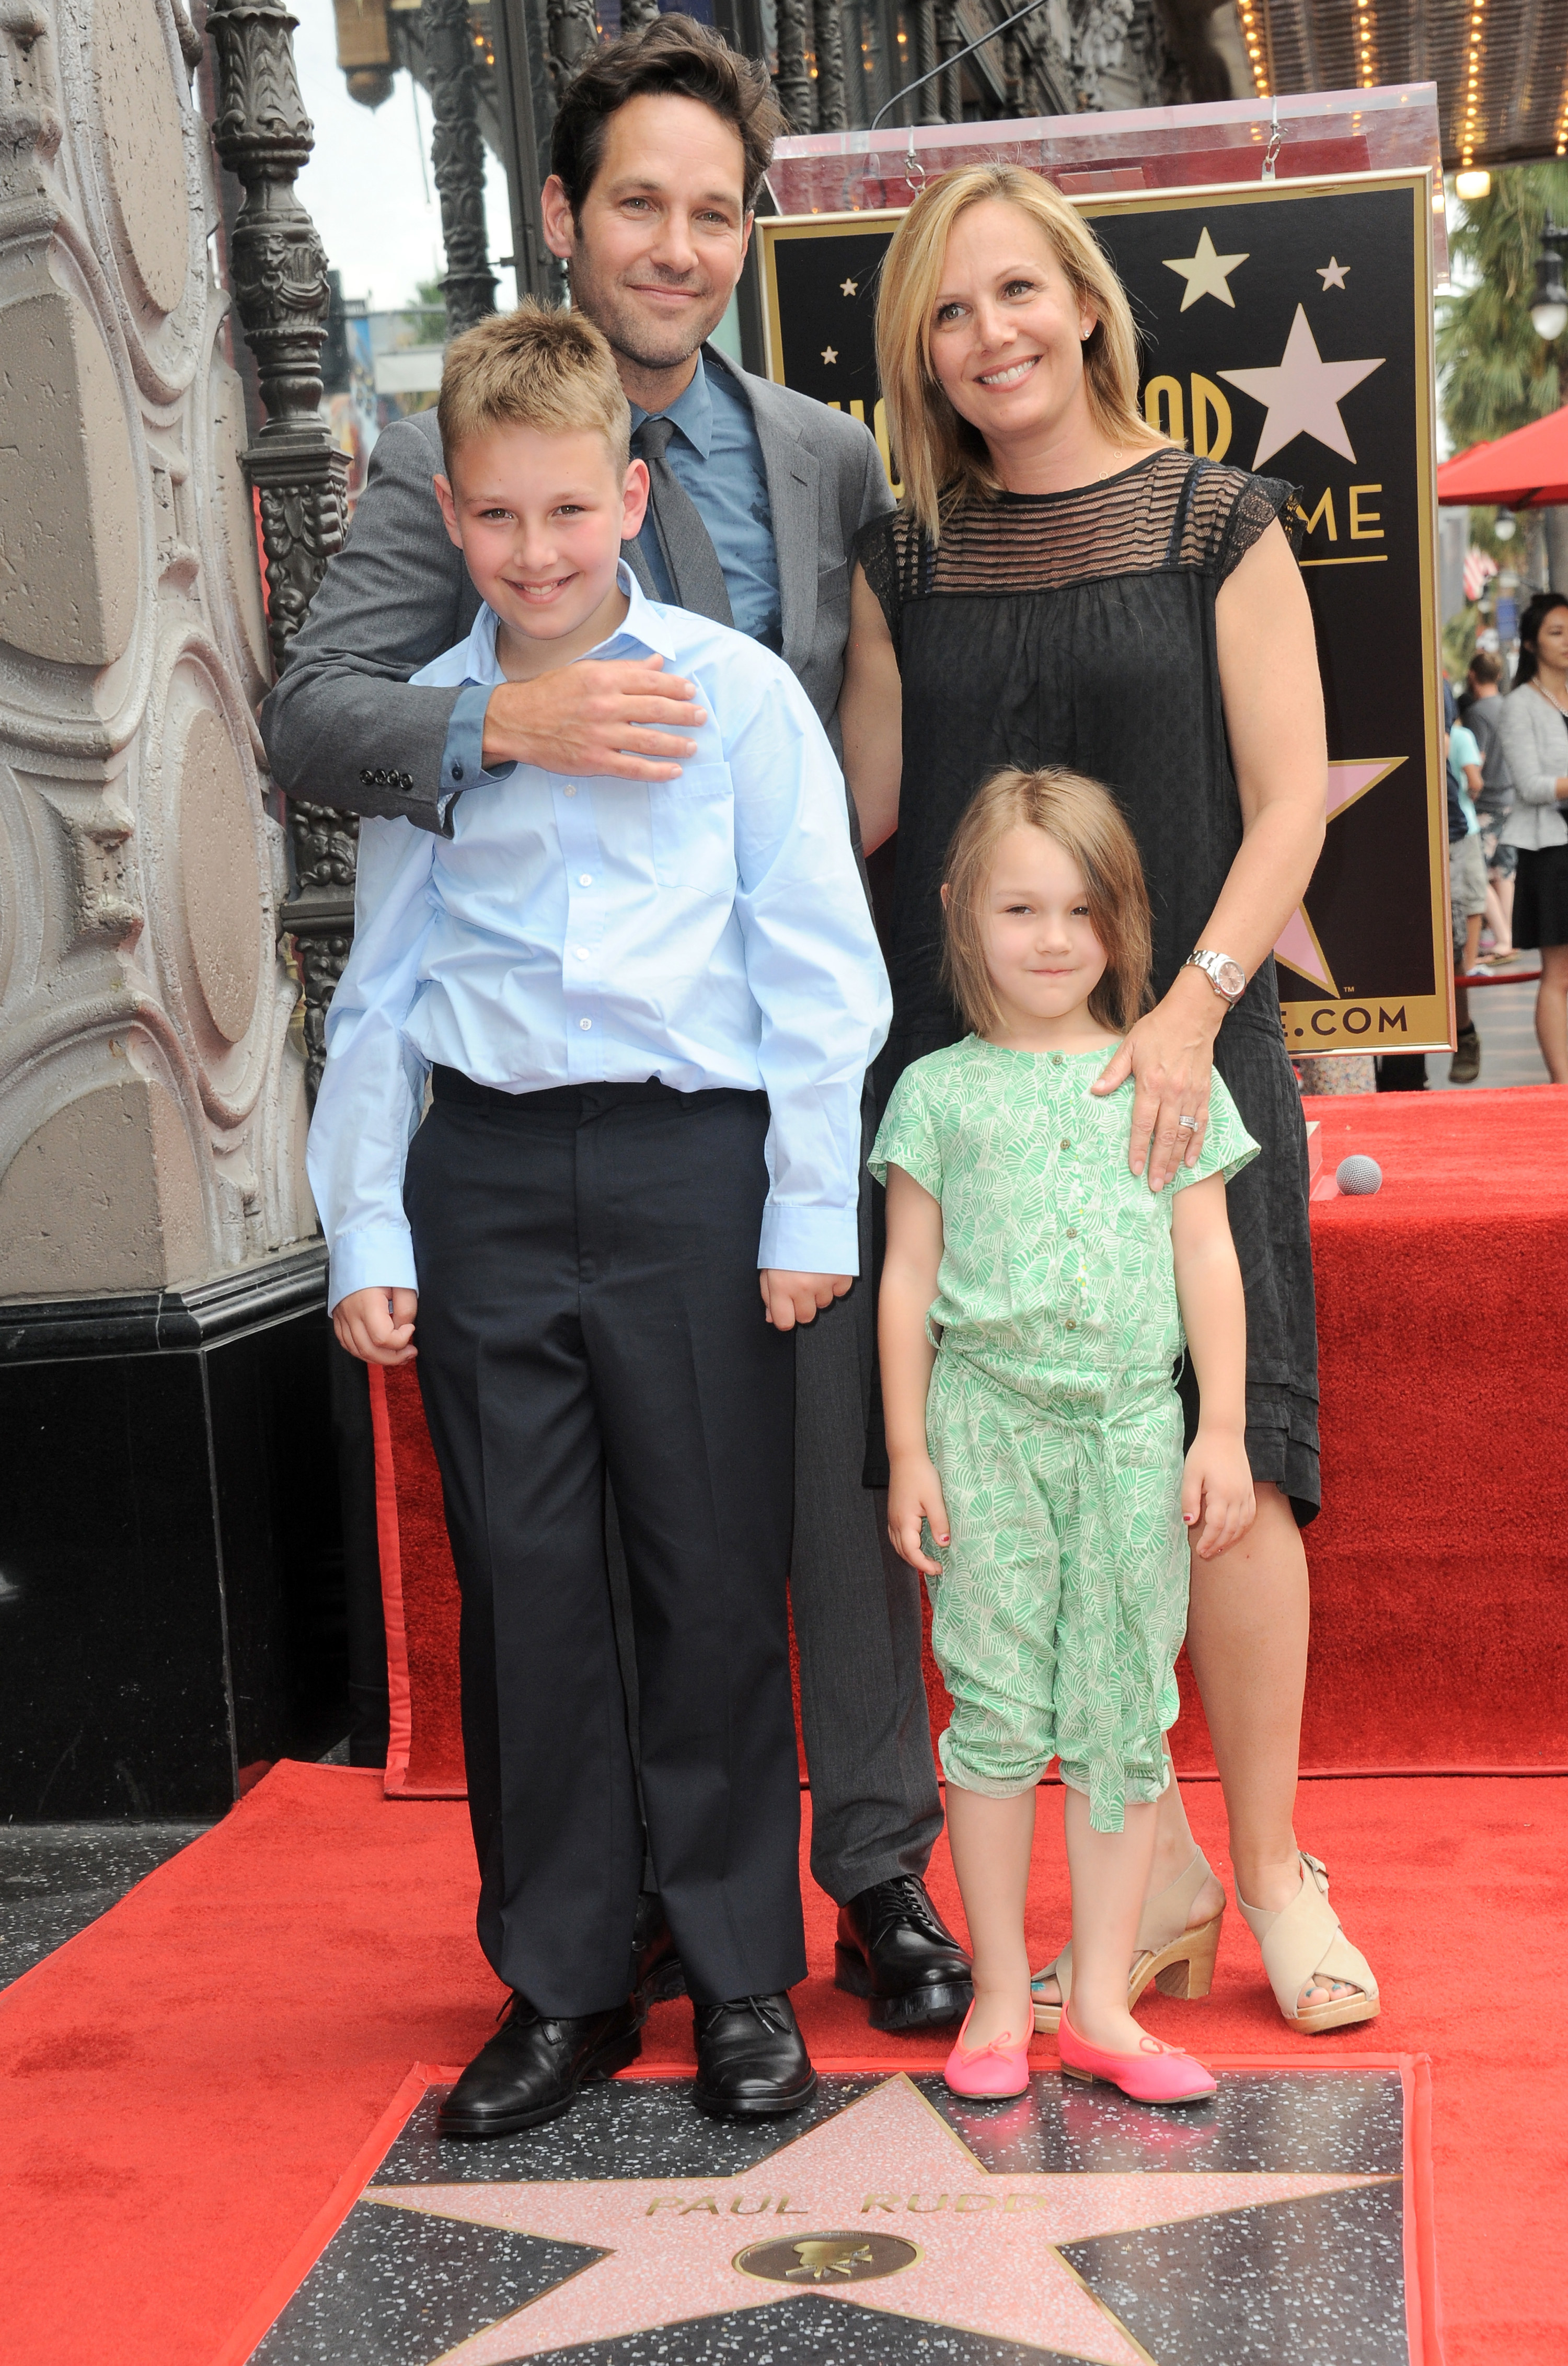 when paul was getting his star on the walk of fame